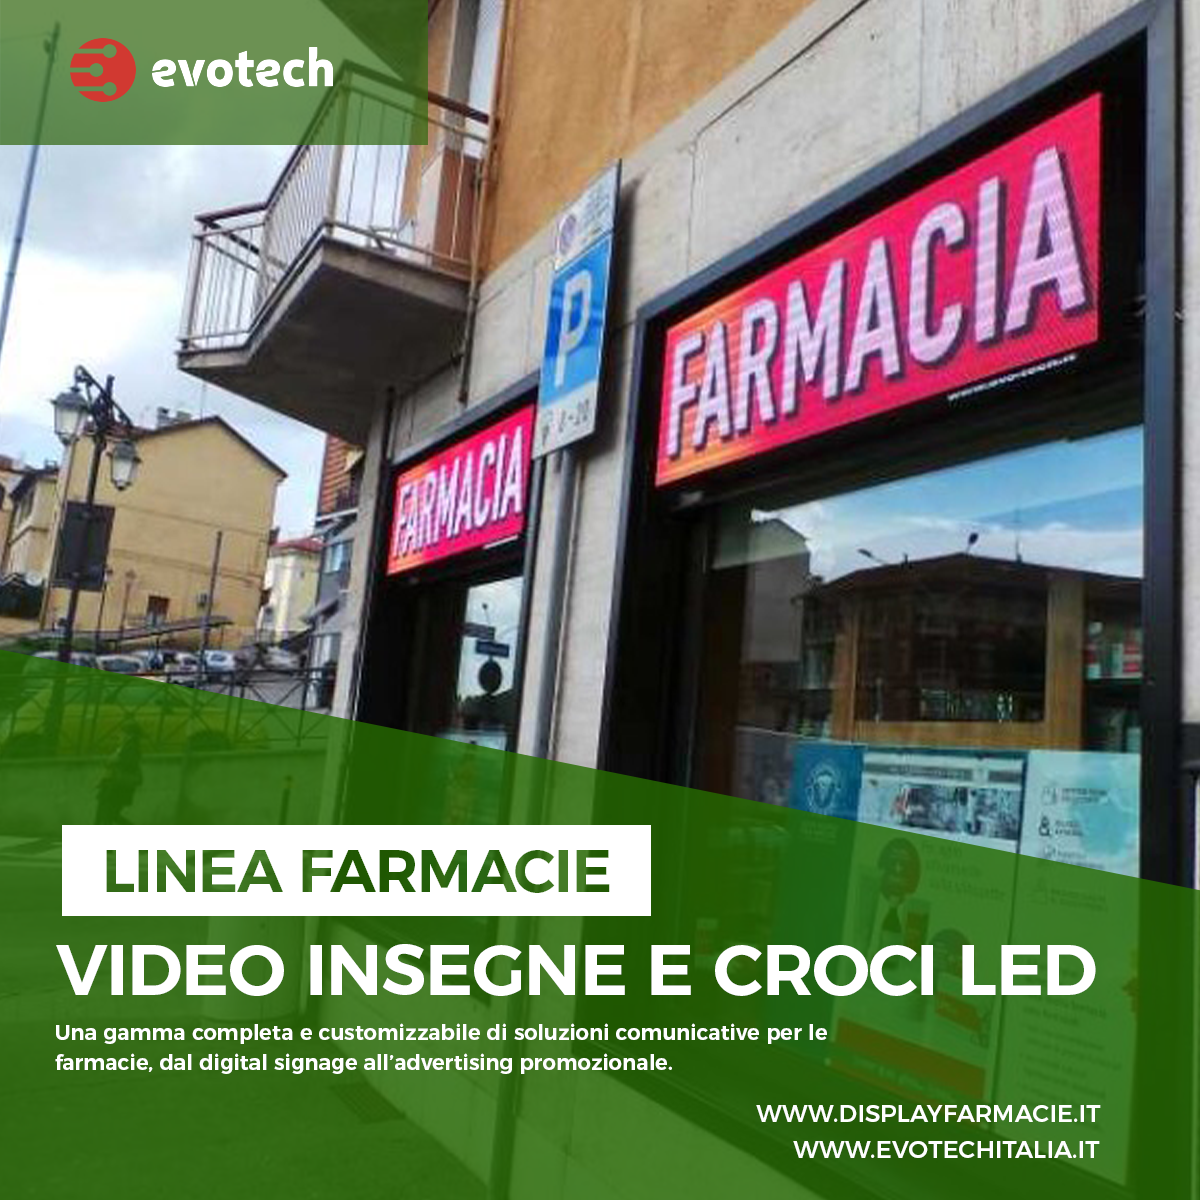 Facebook-post-linea-farmacie-04-04-2019-Business-1200x1200-1.png